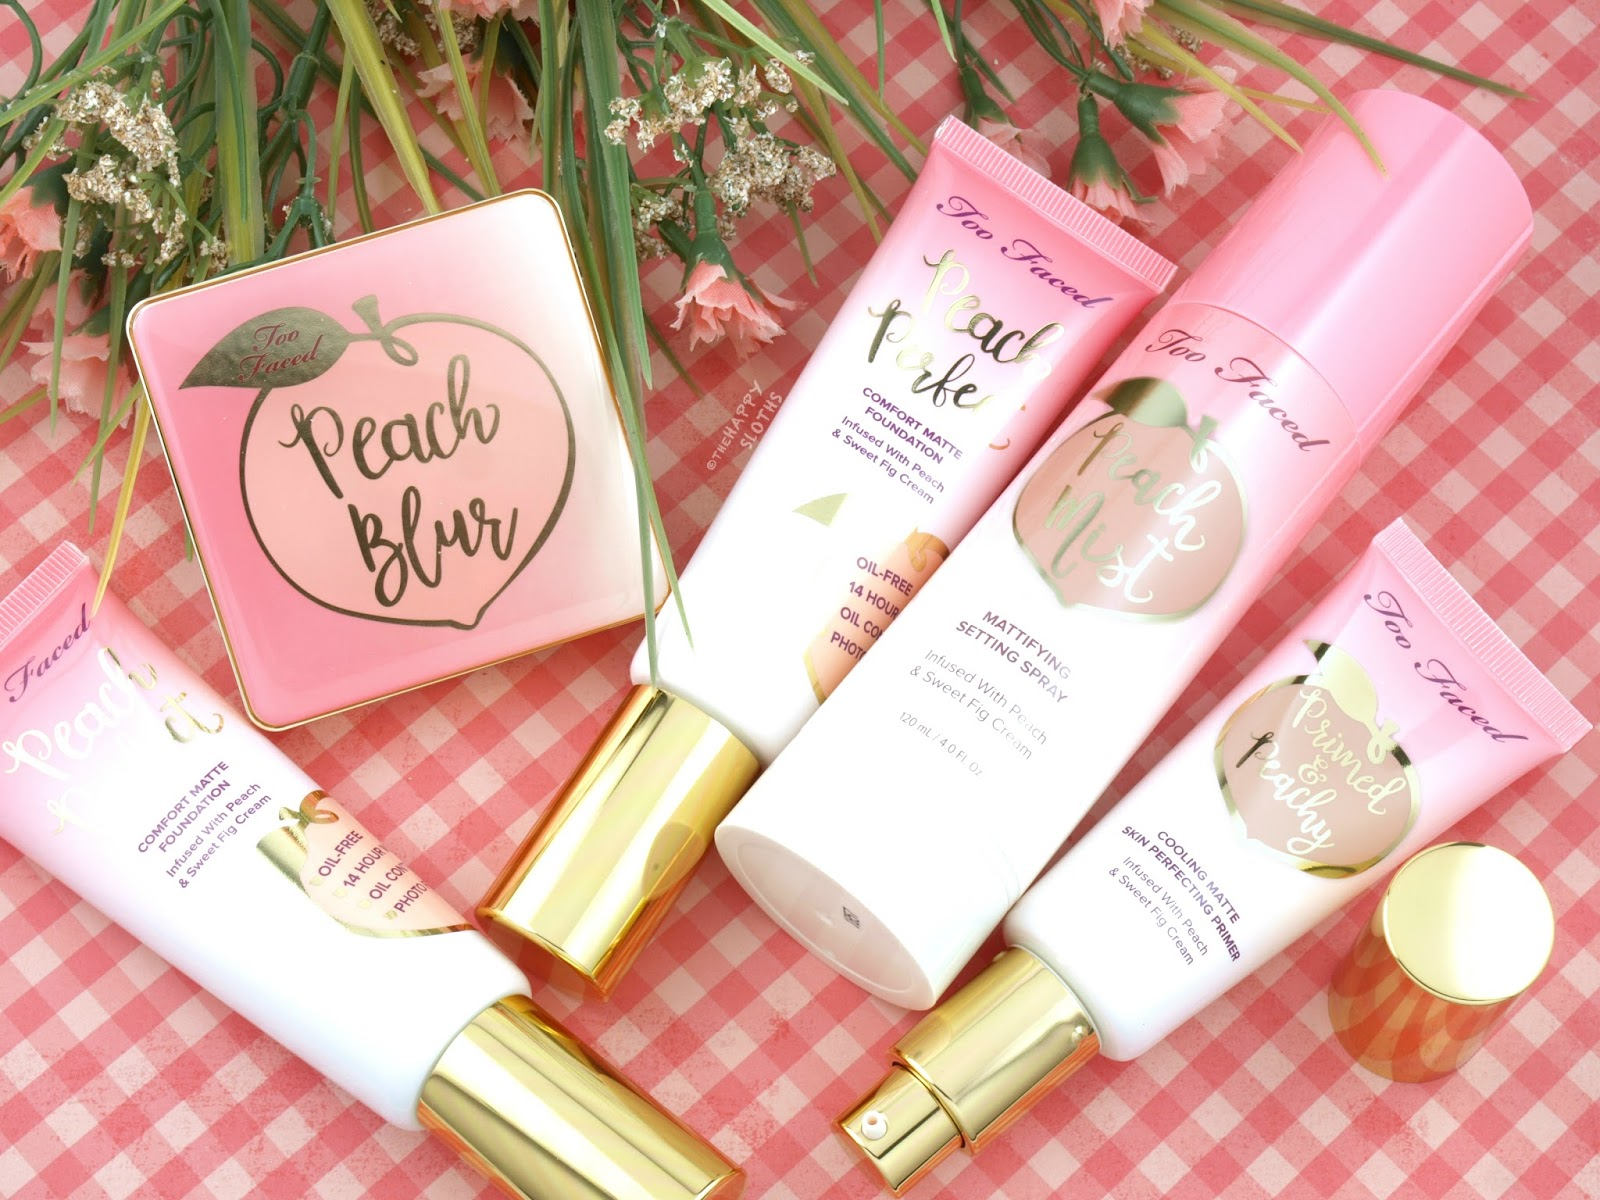 Too Faced Peaches & Cream Collection | Peach Blur Powder, Peach Perfect Foundation, Primed & Peachy Primer & Peach Mist Spray: Review and Swatches